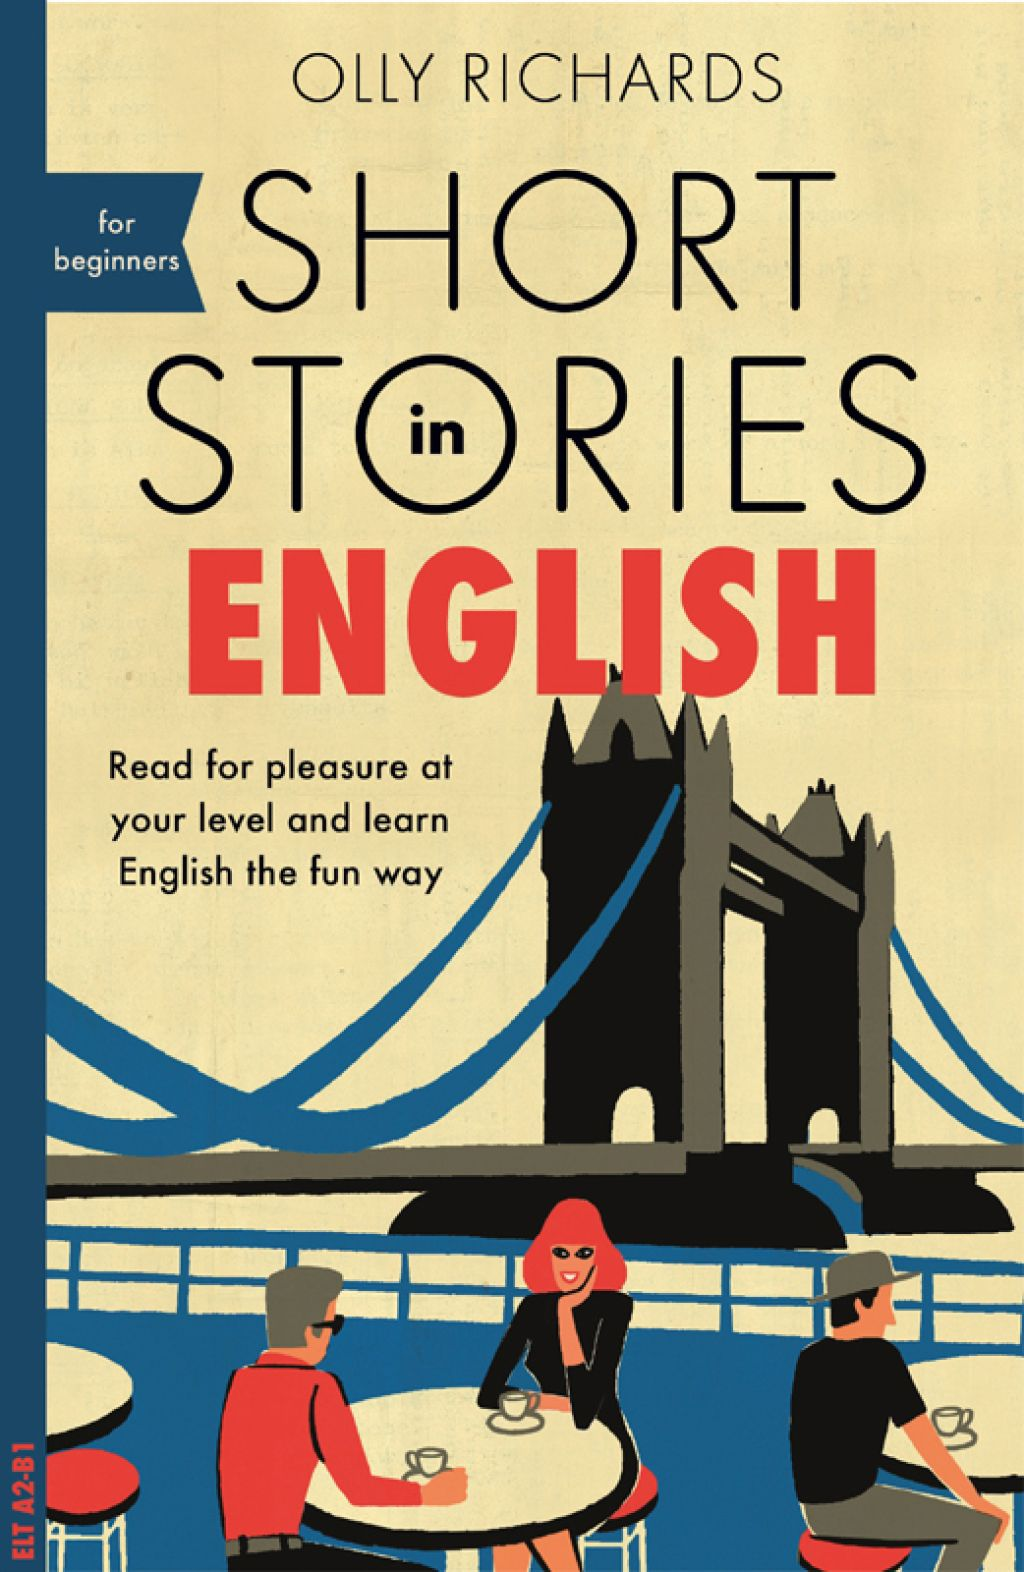 Short Stories In English For Beginners Ebook English Short Stories English For Beginners English Story How to read books to learn english